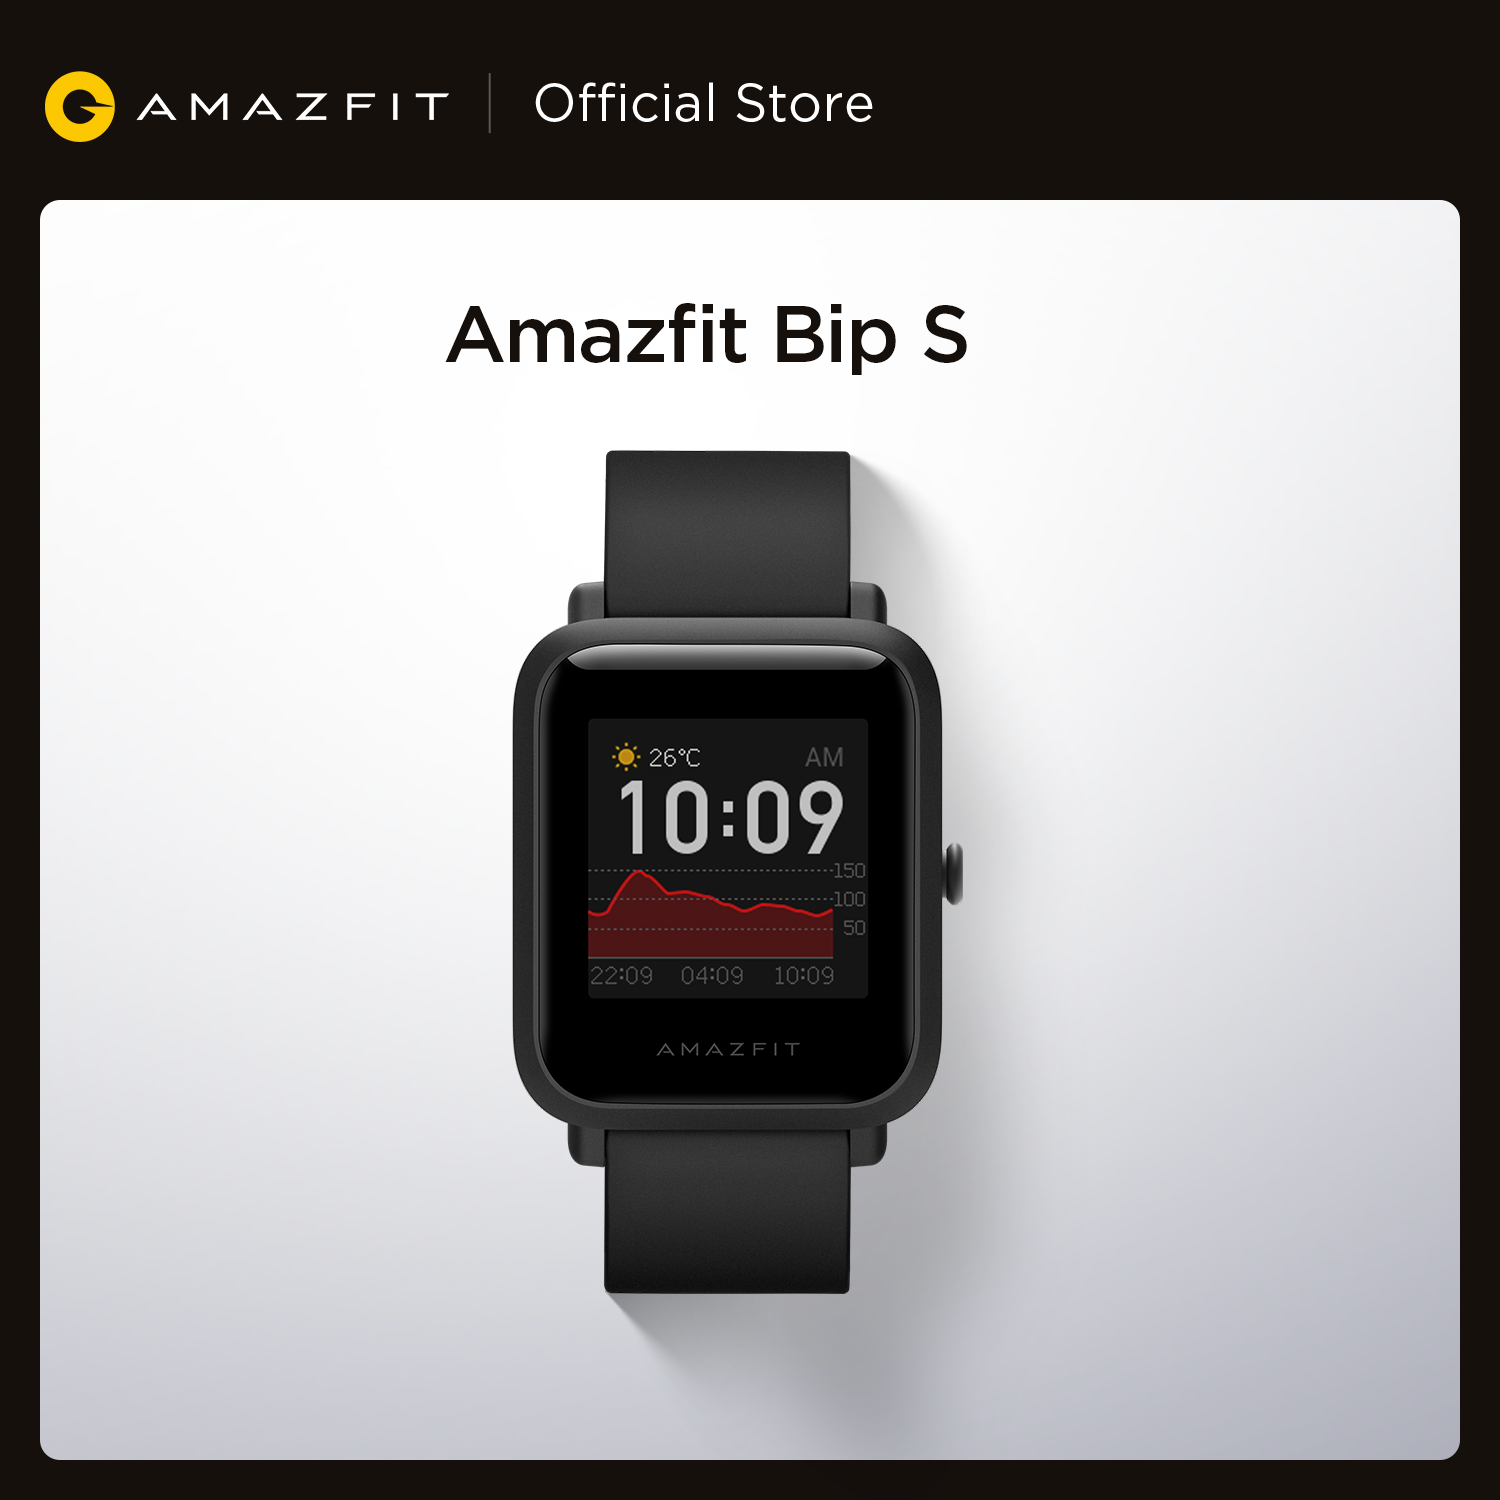 In Stock 2020 Global Amazfit Bip S Smartwatch 5ATM waterproof built in GPS GLONASS Bluetooth Smart Watch for Android iOS Phone|Smart Watches| - AliExpress